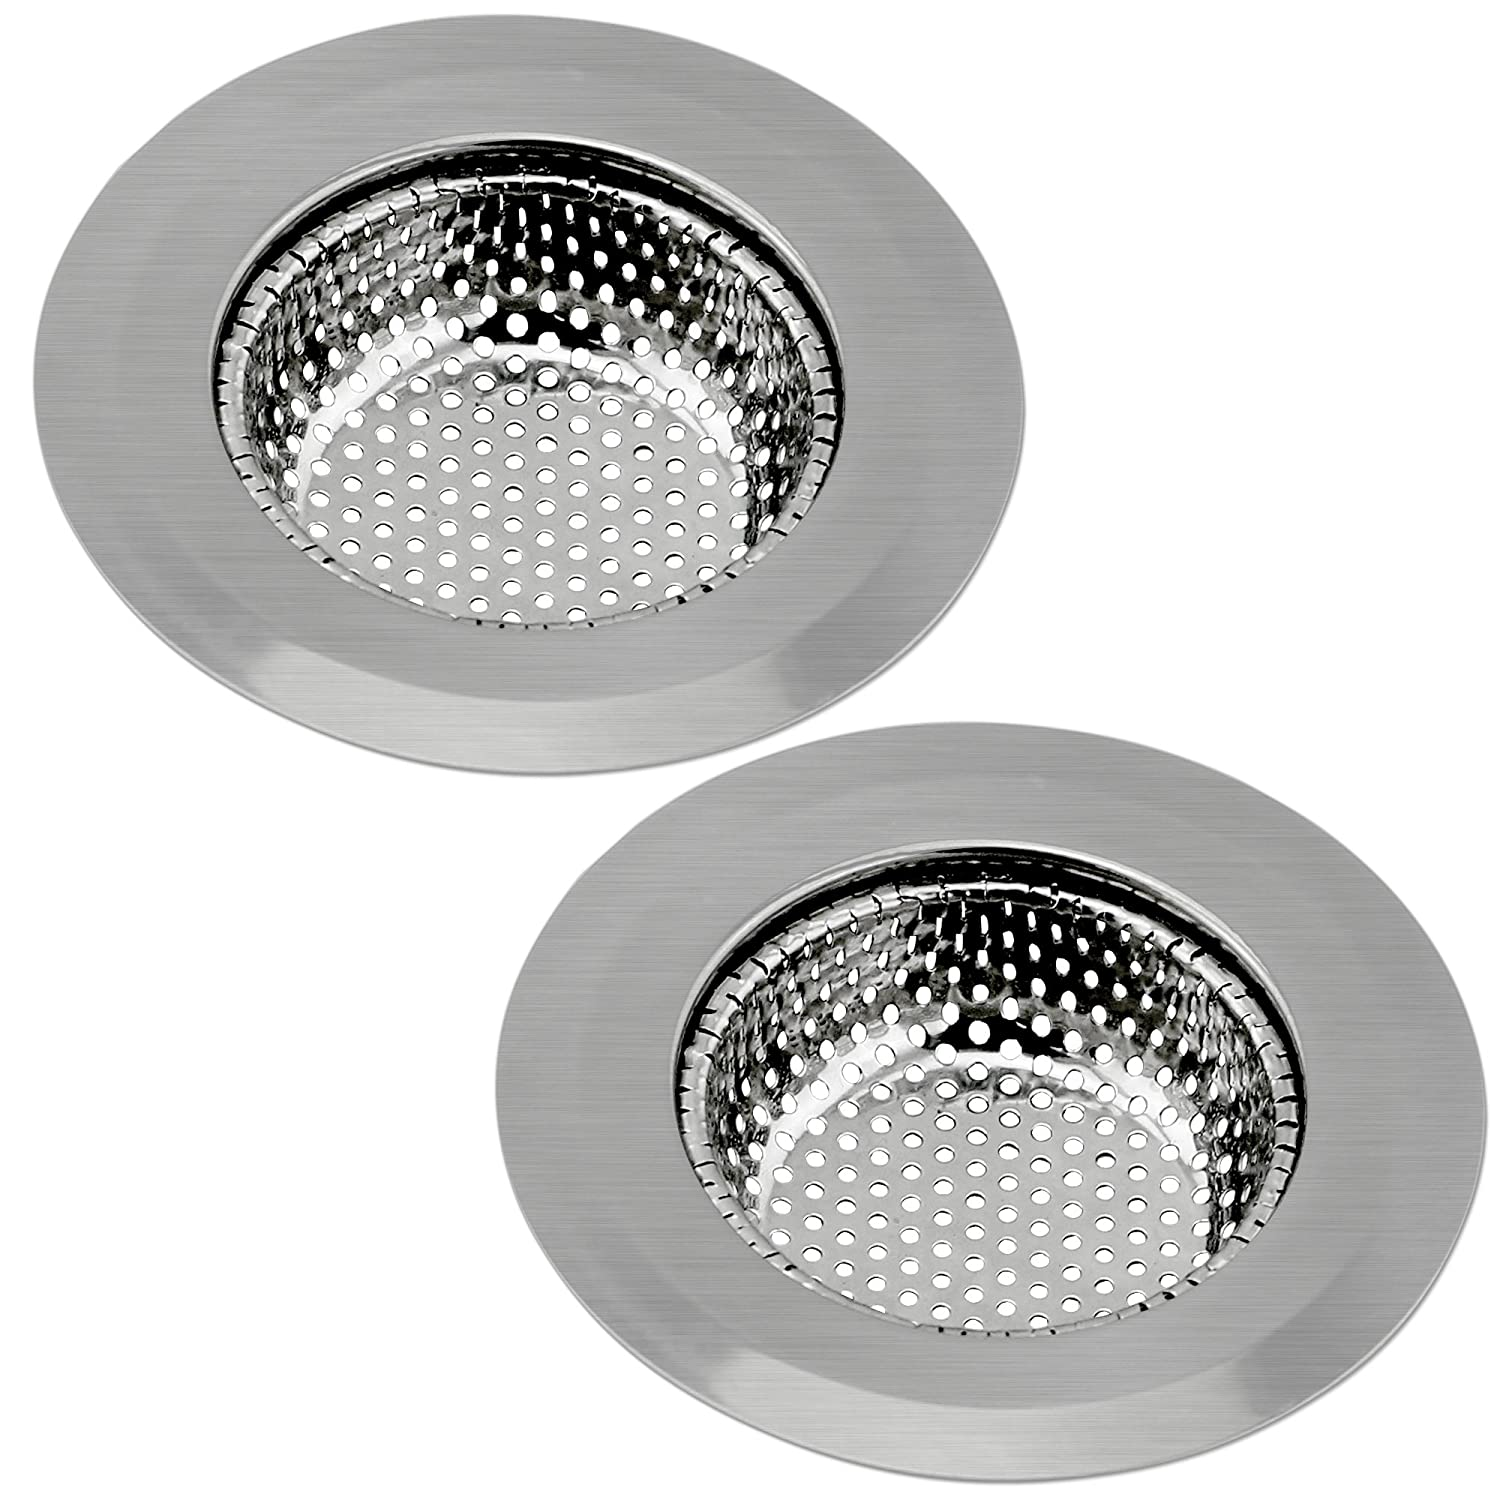 kitchen sink mesh strainer set of 2 ipow sturdy stainless steel kitchen sink strainer 5858